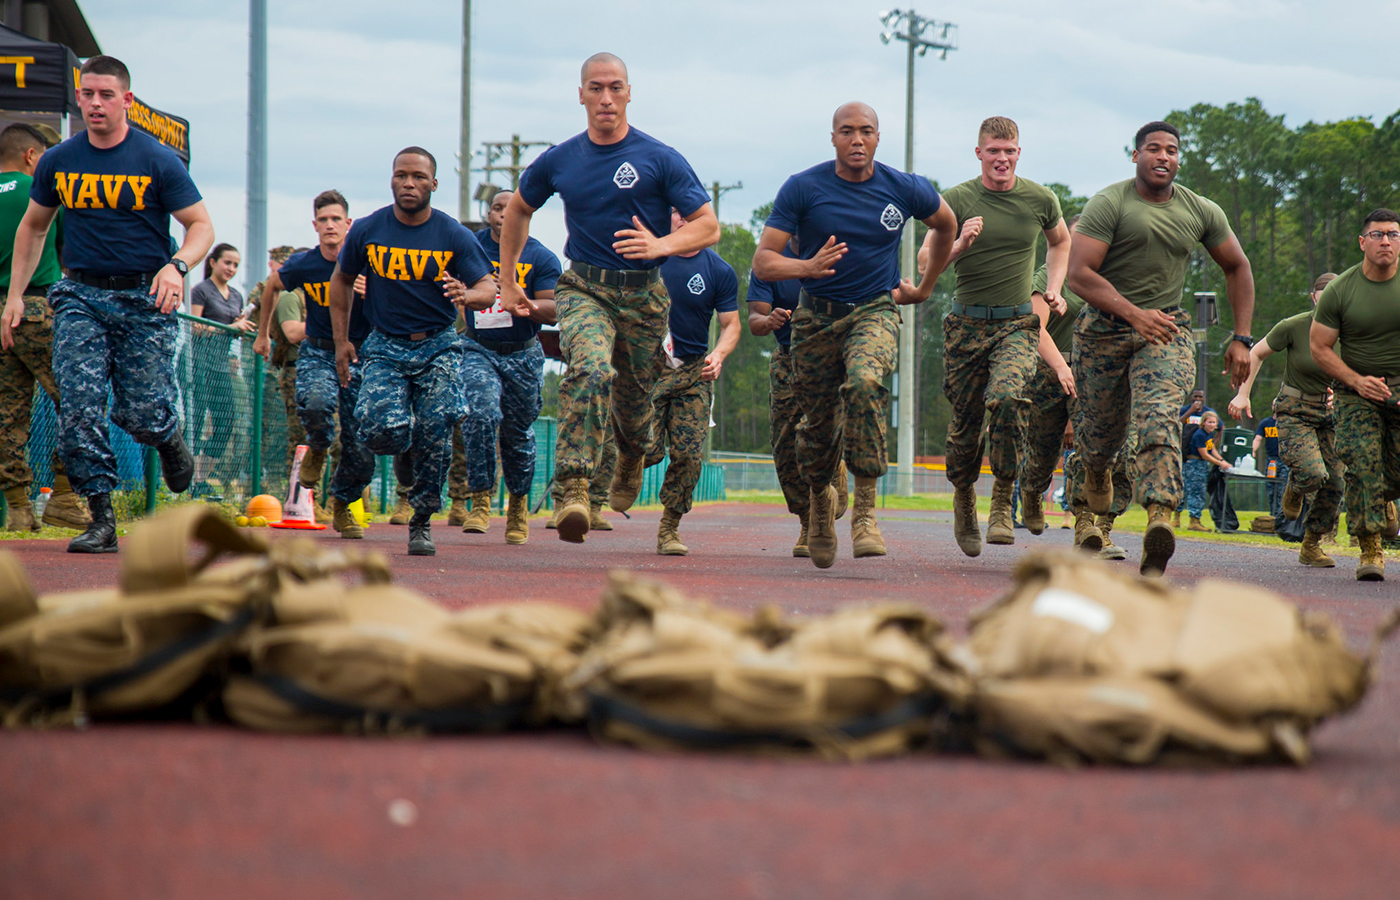 Navy Boot Camp